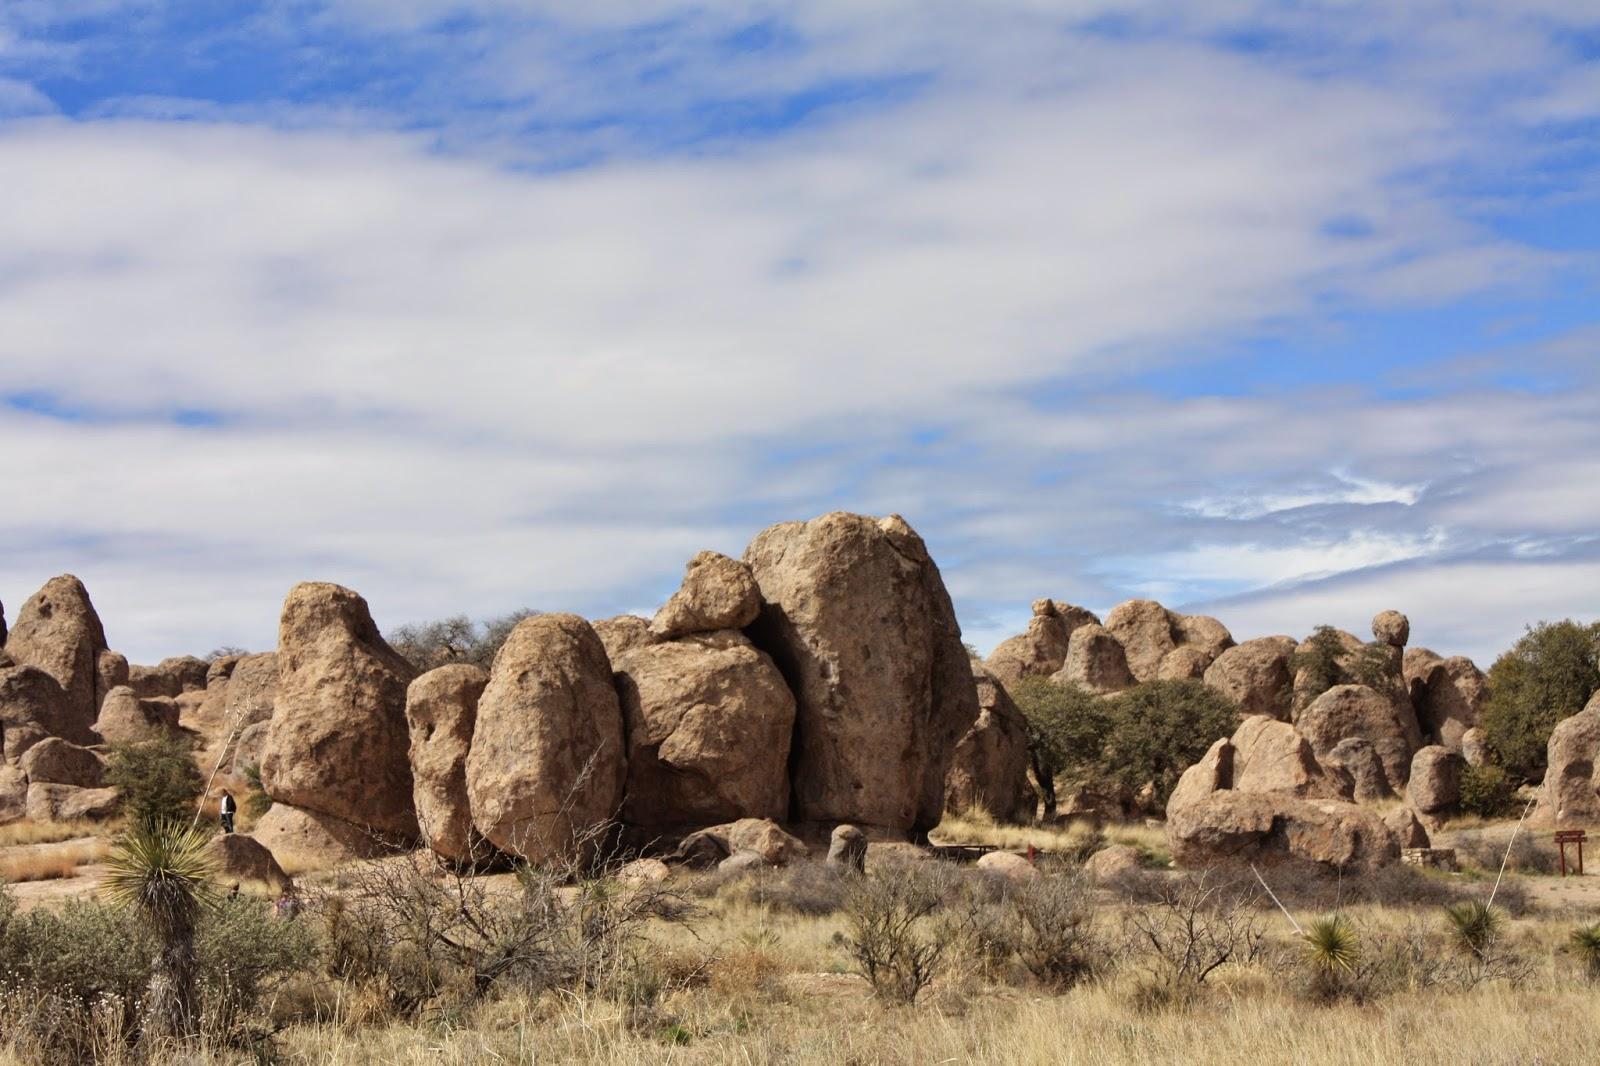 Large boulders some are 40 feet high